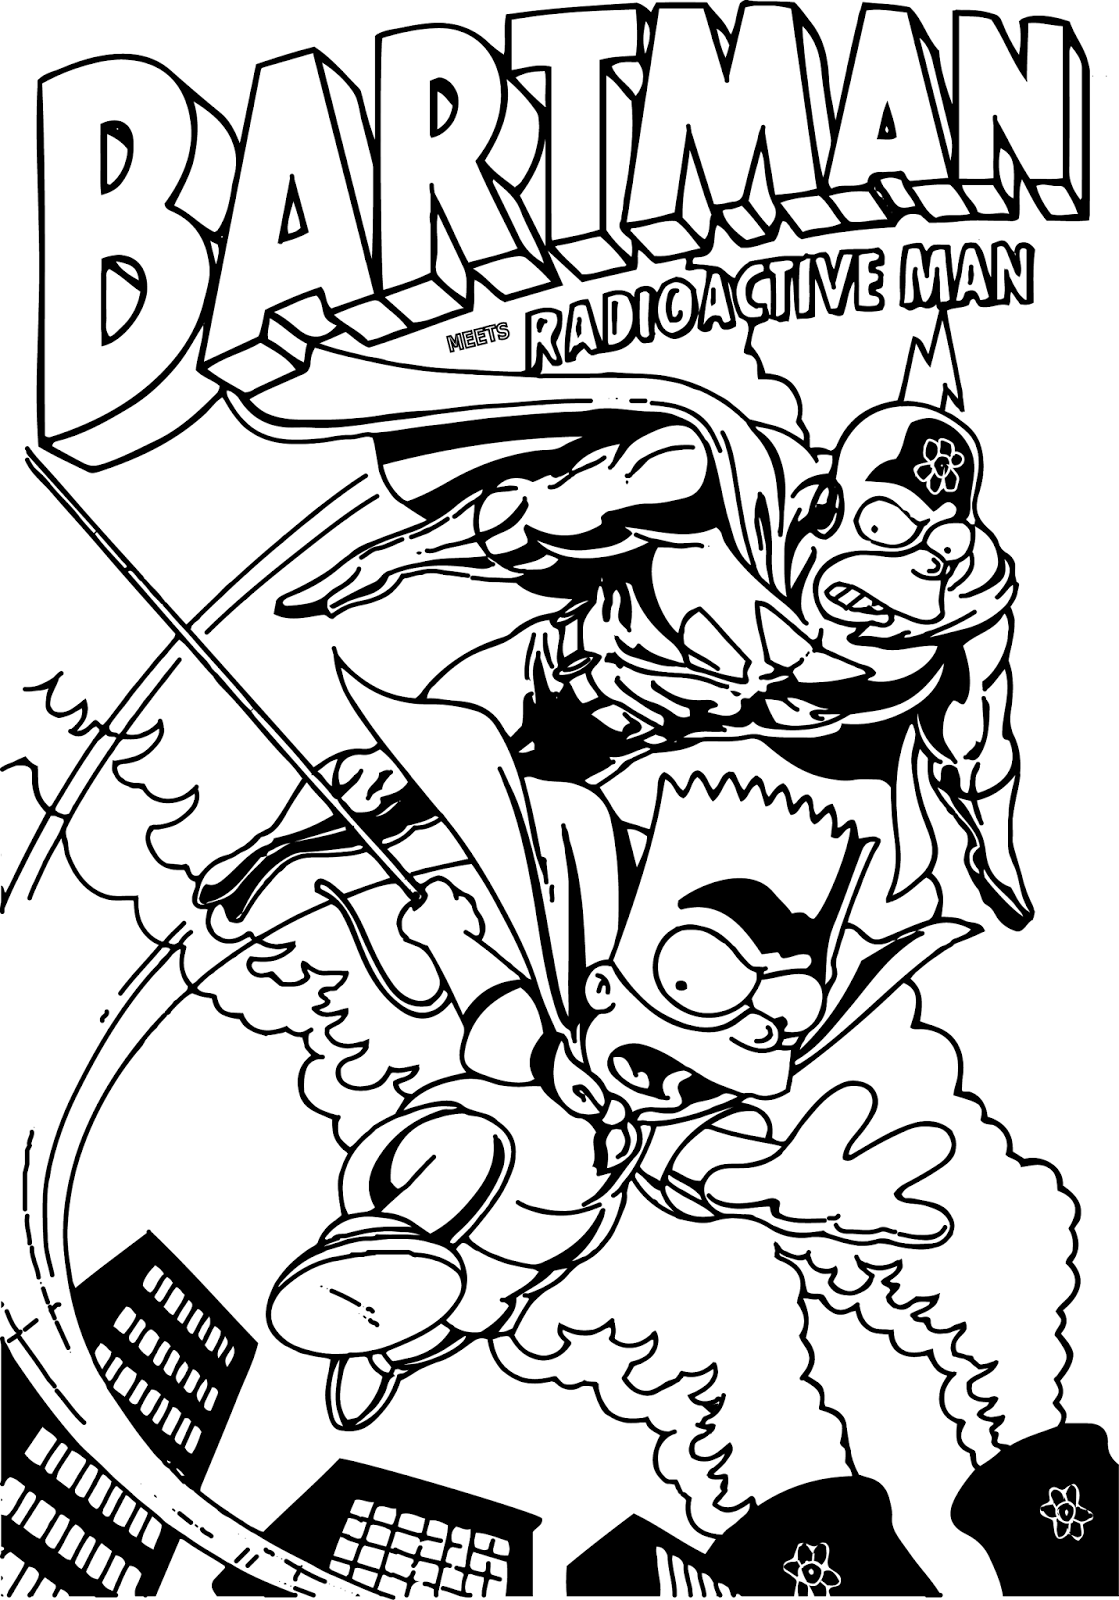 bartman simpsons coloring pages - photo#1